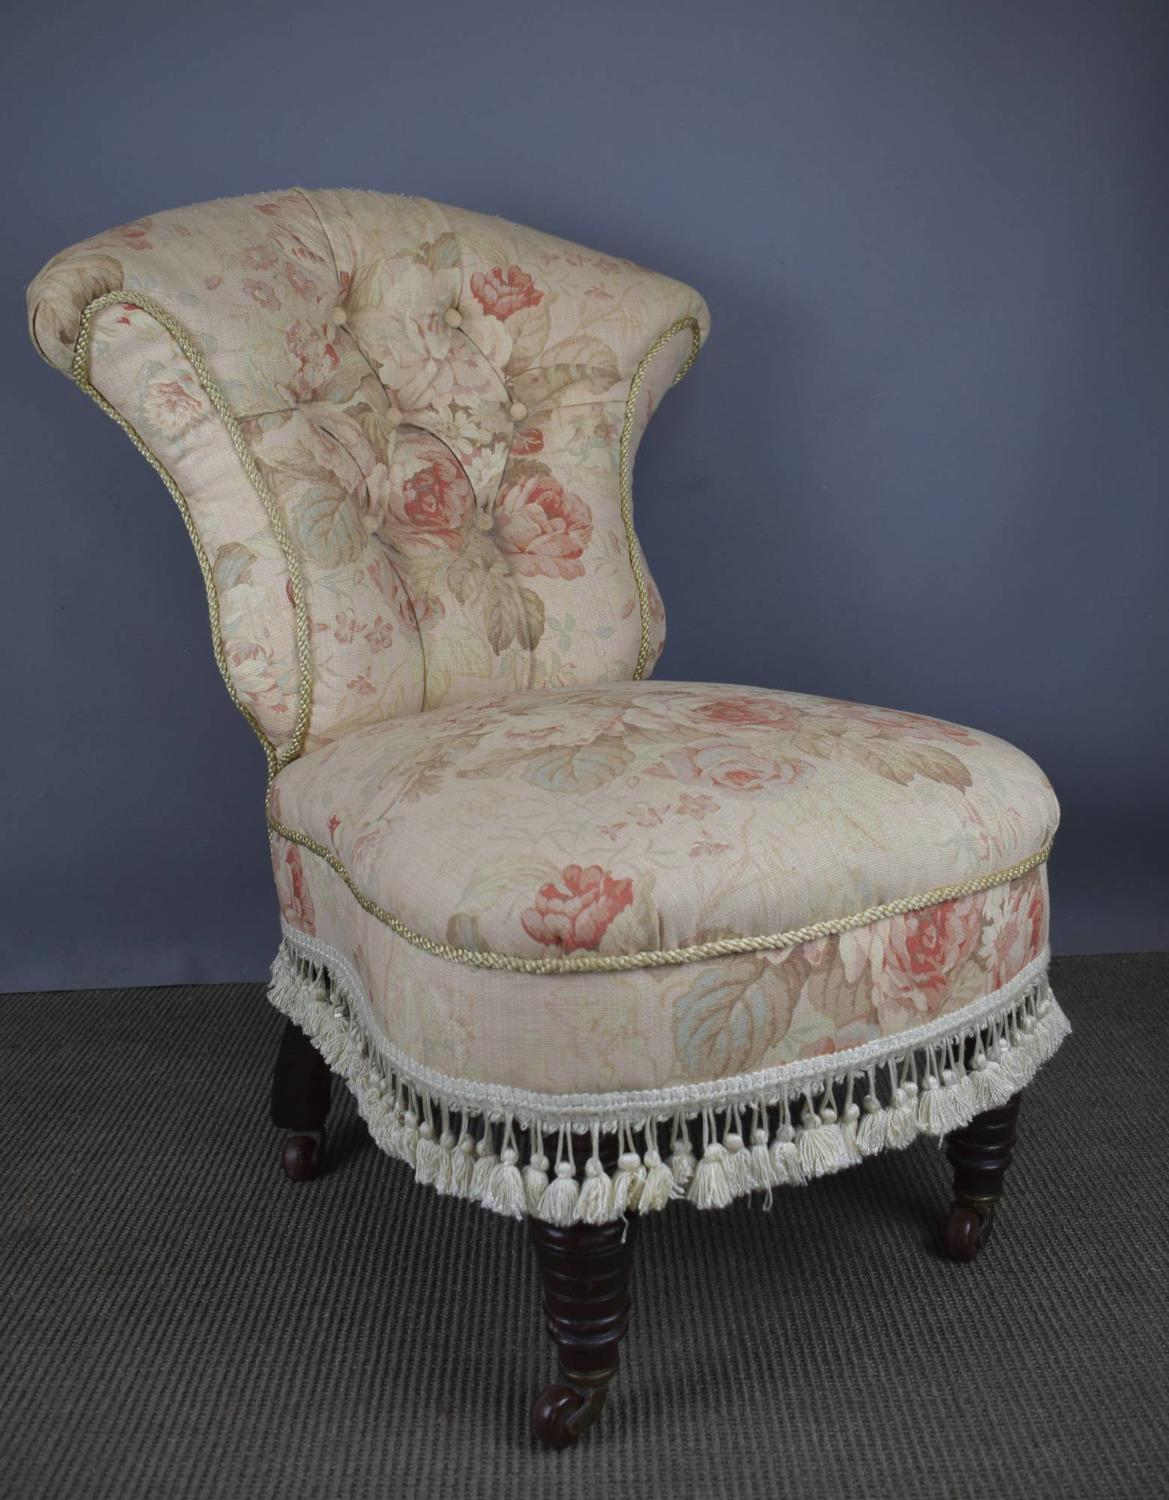 Antique Button Back Nursing Chair with Tapestry Upholstery